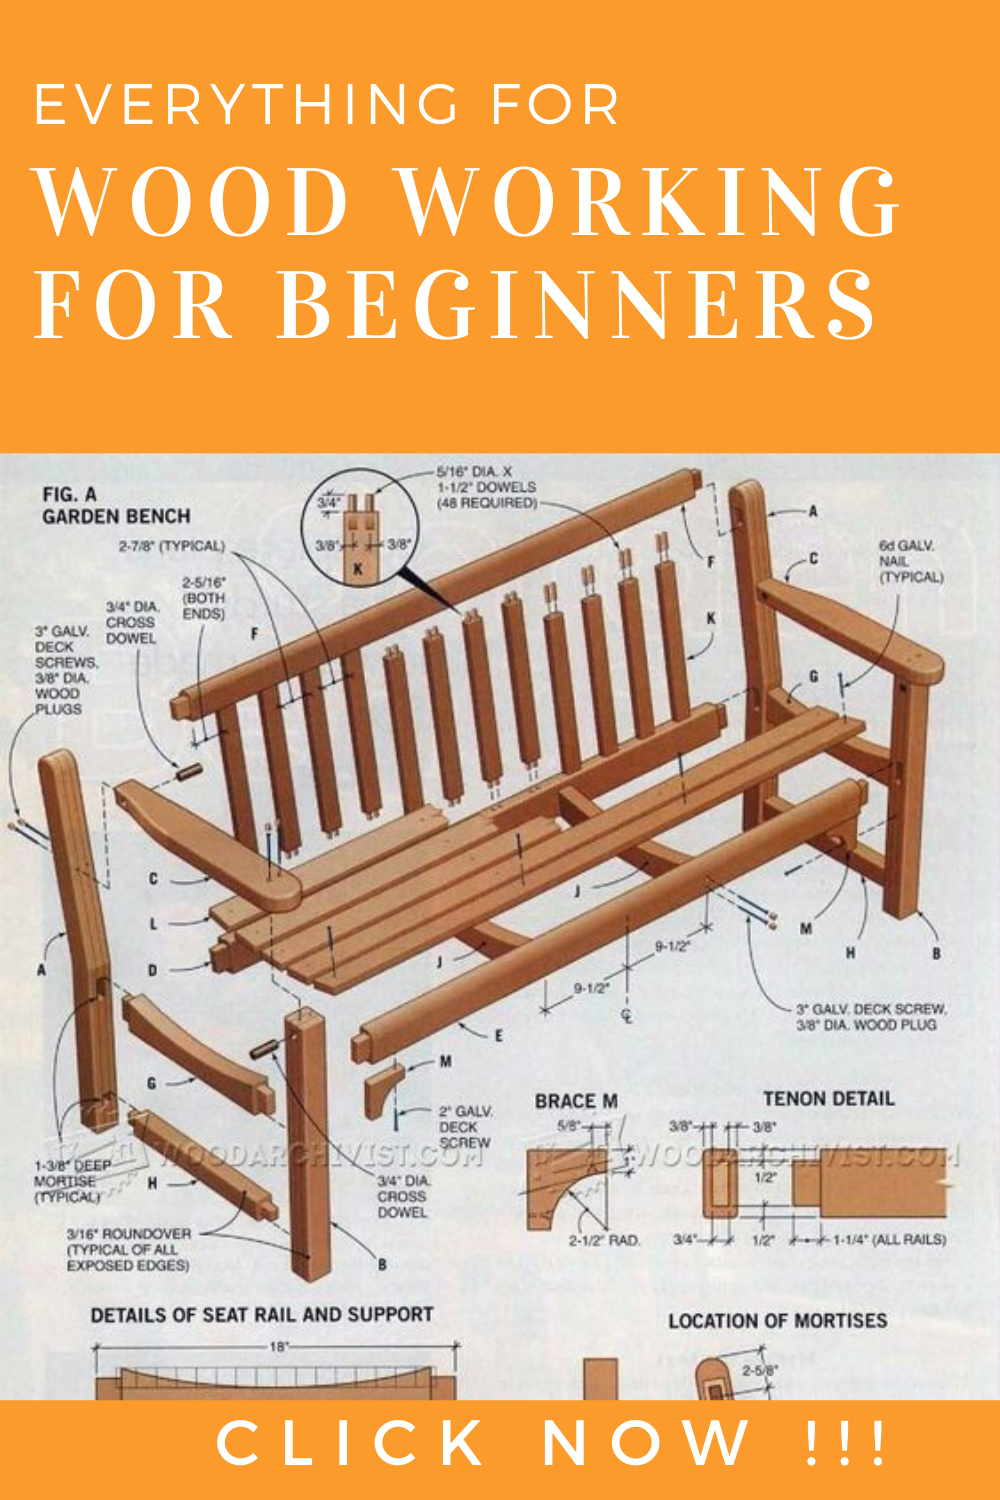 Woodworking For Beginners Click now to know them !!!! #woodproject  #woodworking for beginners #thesawguy #easywoodworkingprojects #woodworkingprojectsforbeginners #woodworking101 #woodworkingideas